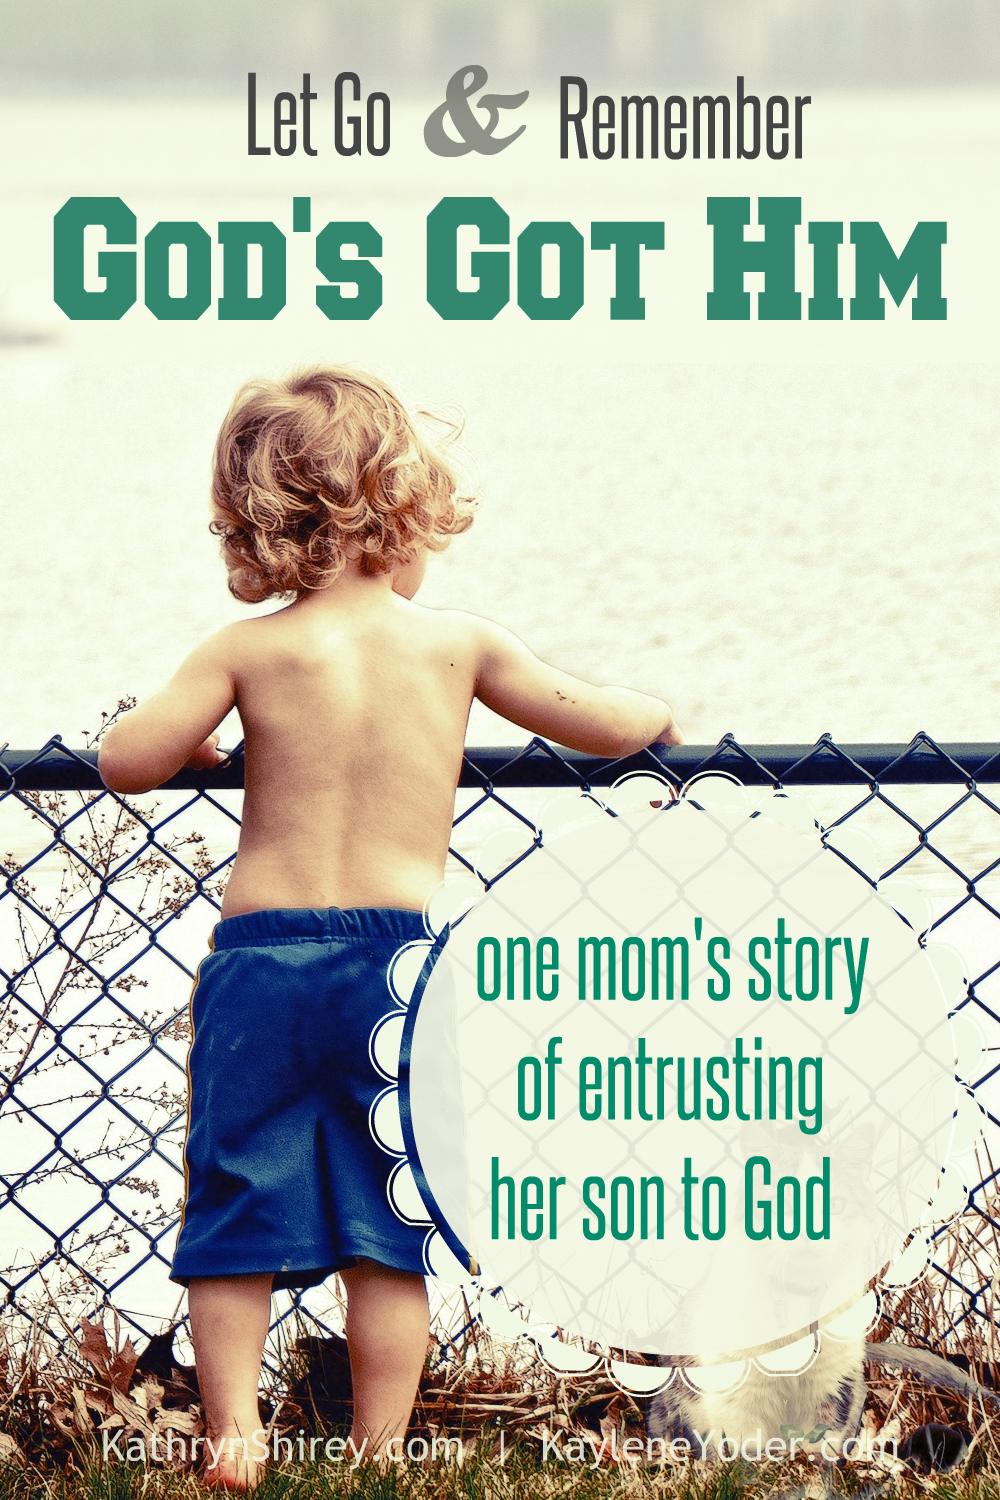 How I learned to entrust my child to God - to let go and remember that God's got him. Just in time to face my hardest moments as a mom, when I needed God's protection of this child the most.